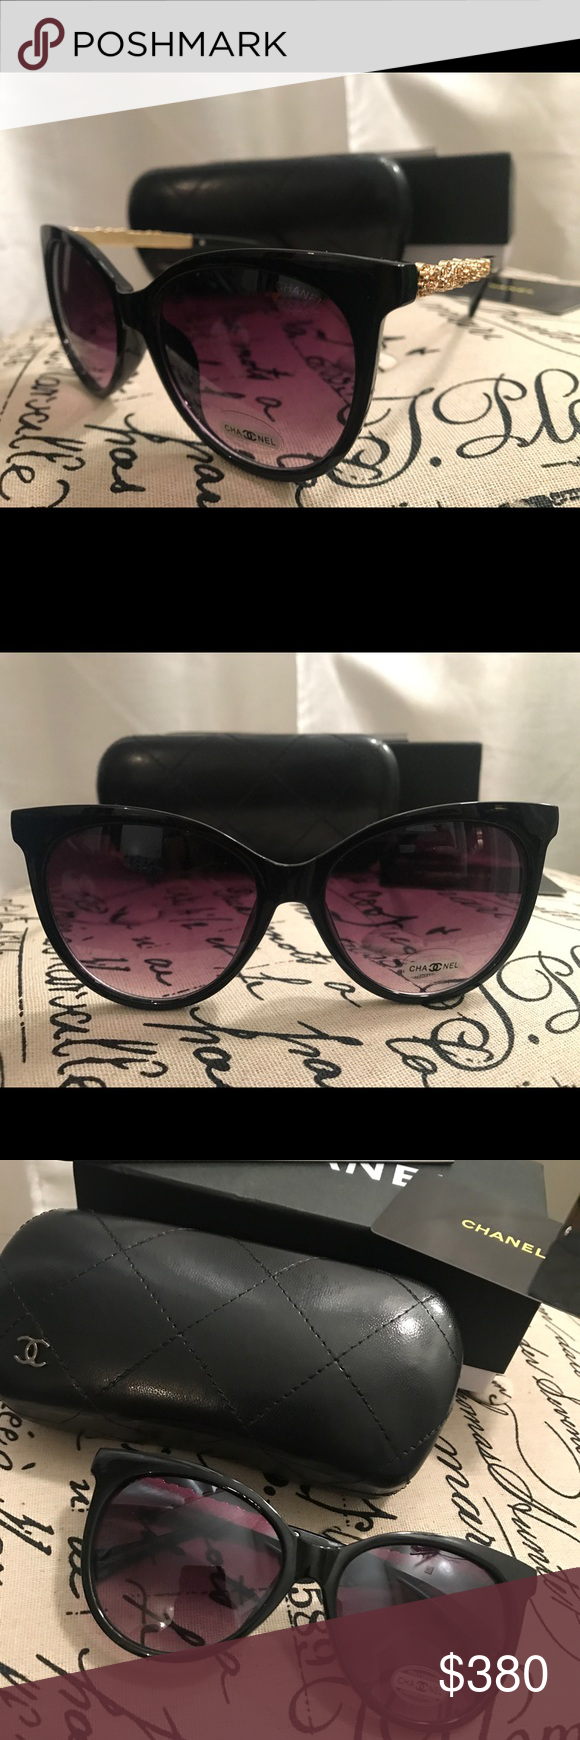 8958960687bb NWT Chanel Sunglasses 5360 NWT Chanel Sunglasses 5360 New in box! Comes  with case, care manual and authenticity card! Beautiful black sunglasses  with gold ...